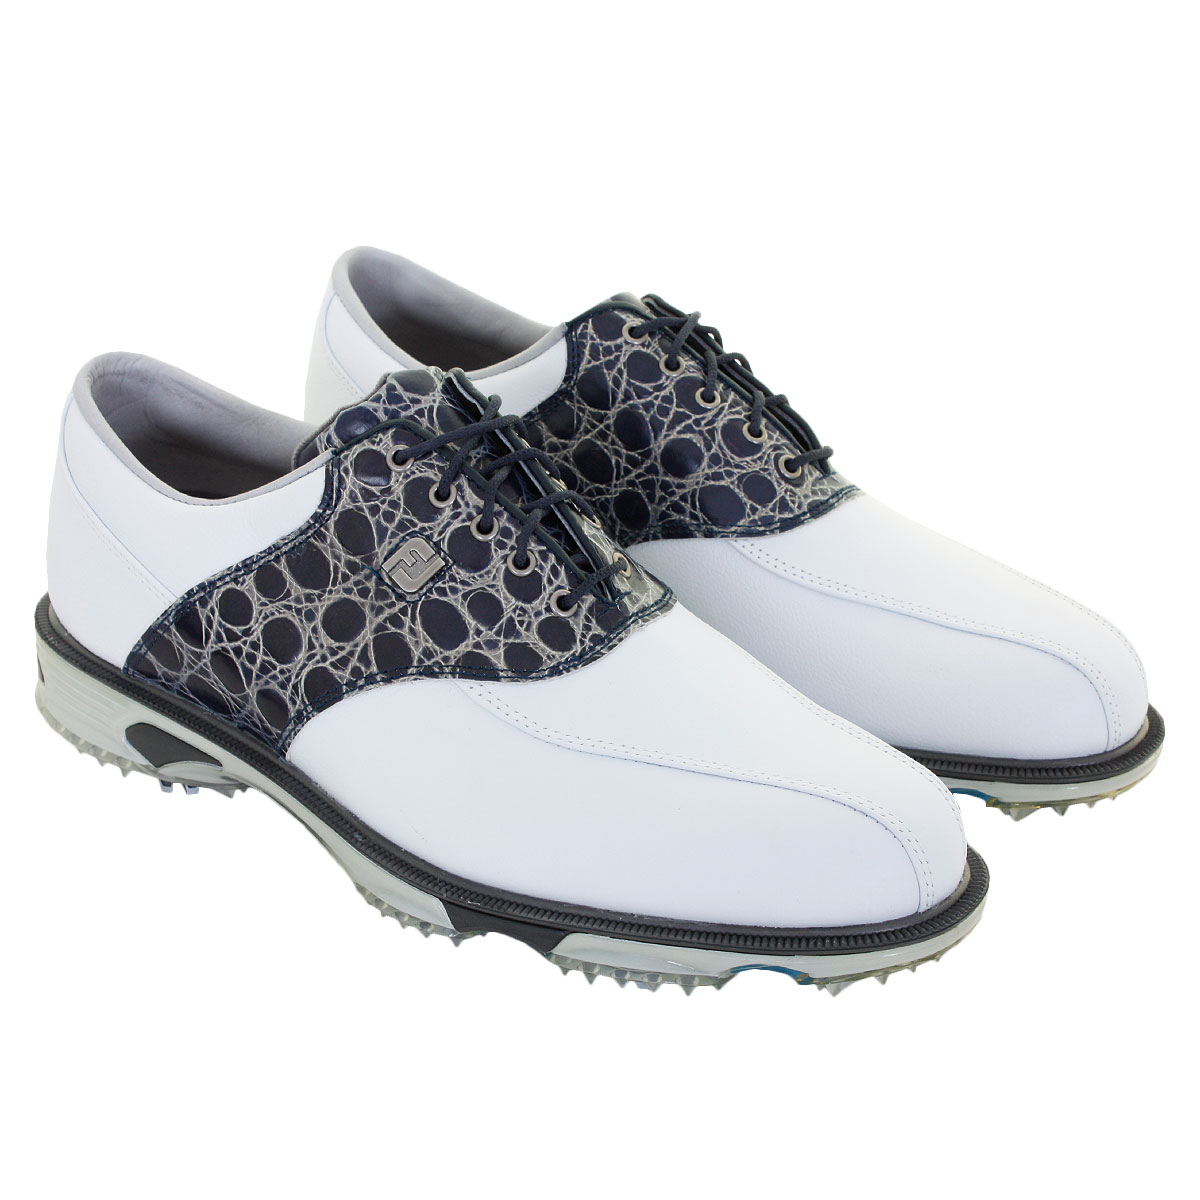 Footjoy-Mens-DryJoys-Tour-Golf-Waterproof-Spiked-Golf-Shoes-53-OFF-RRP thumbnail 18